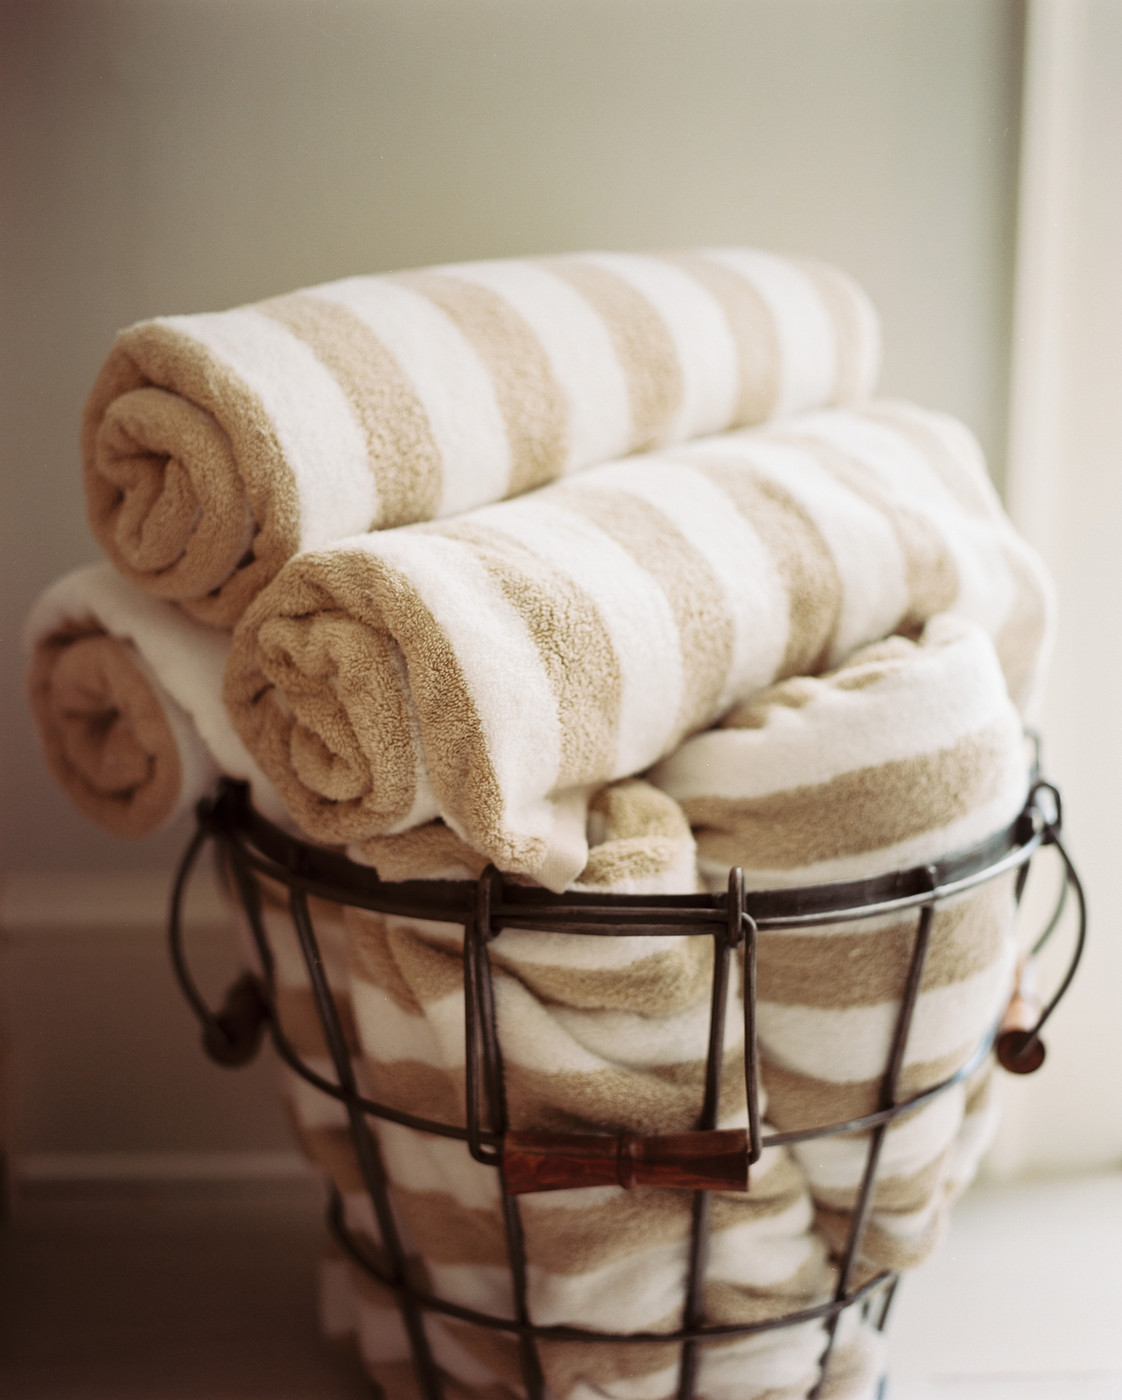 Towel Display Photos, Design, Ideas, Remodel, And Decor